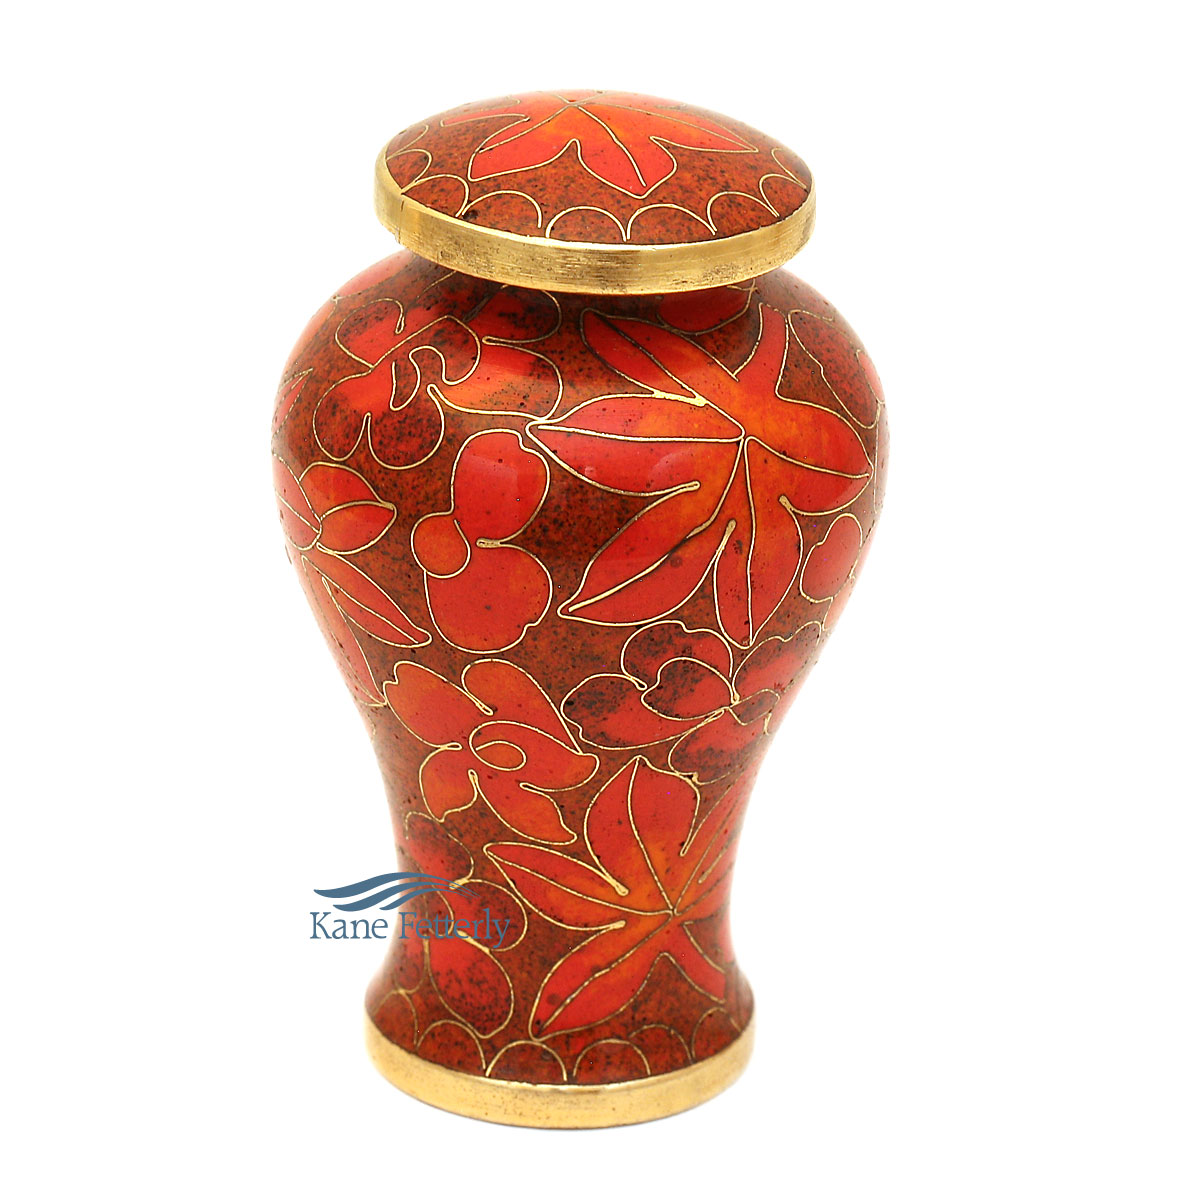 U8592K Cloisonn� miniature urn with leaves